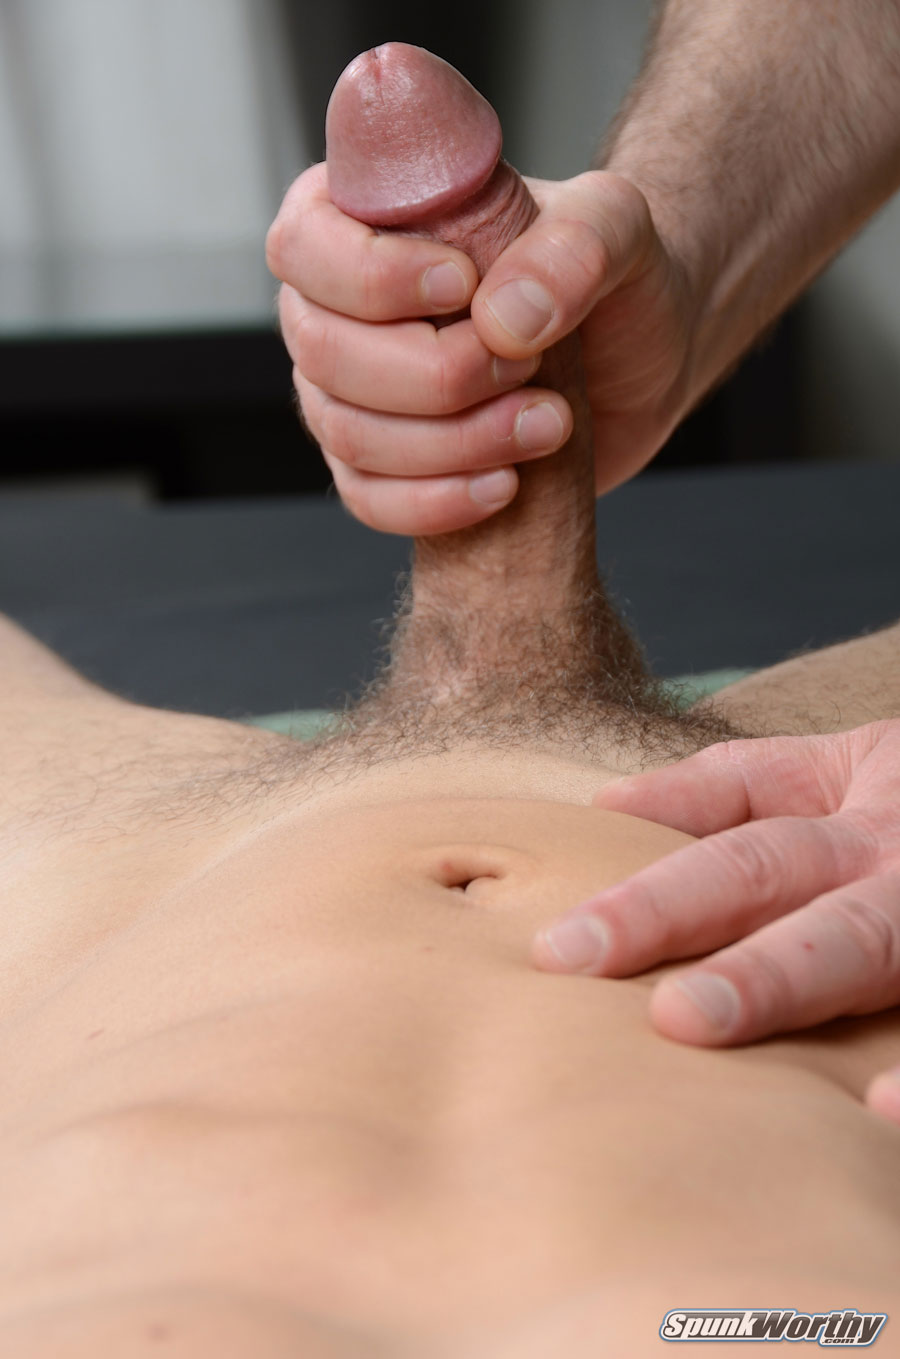 SpunkWorthy-Tommy-Straight-Guys-First-Blow-Job-From-A-Gay-Guy-Massage-Amateur-Gay-Porn-15 Amateur Straight Guy Gets His First Massage With A Happy Ending